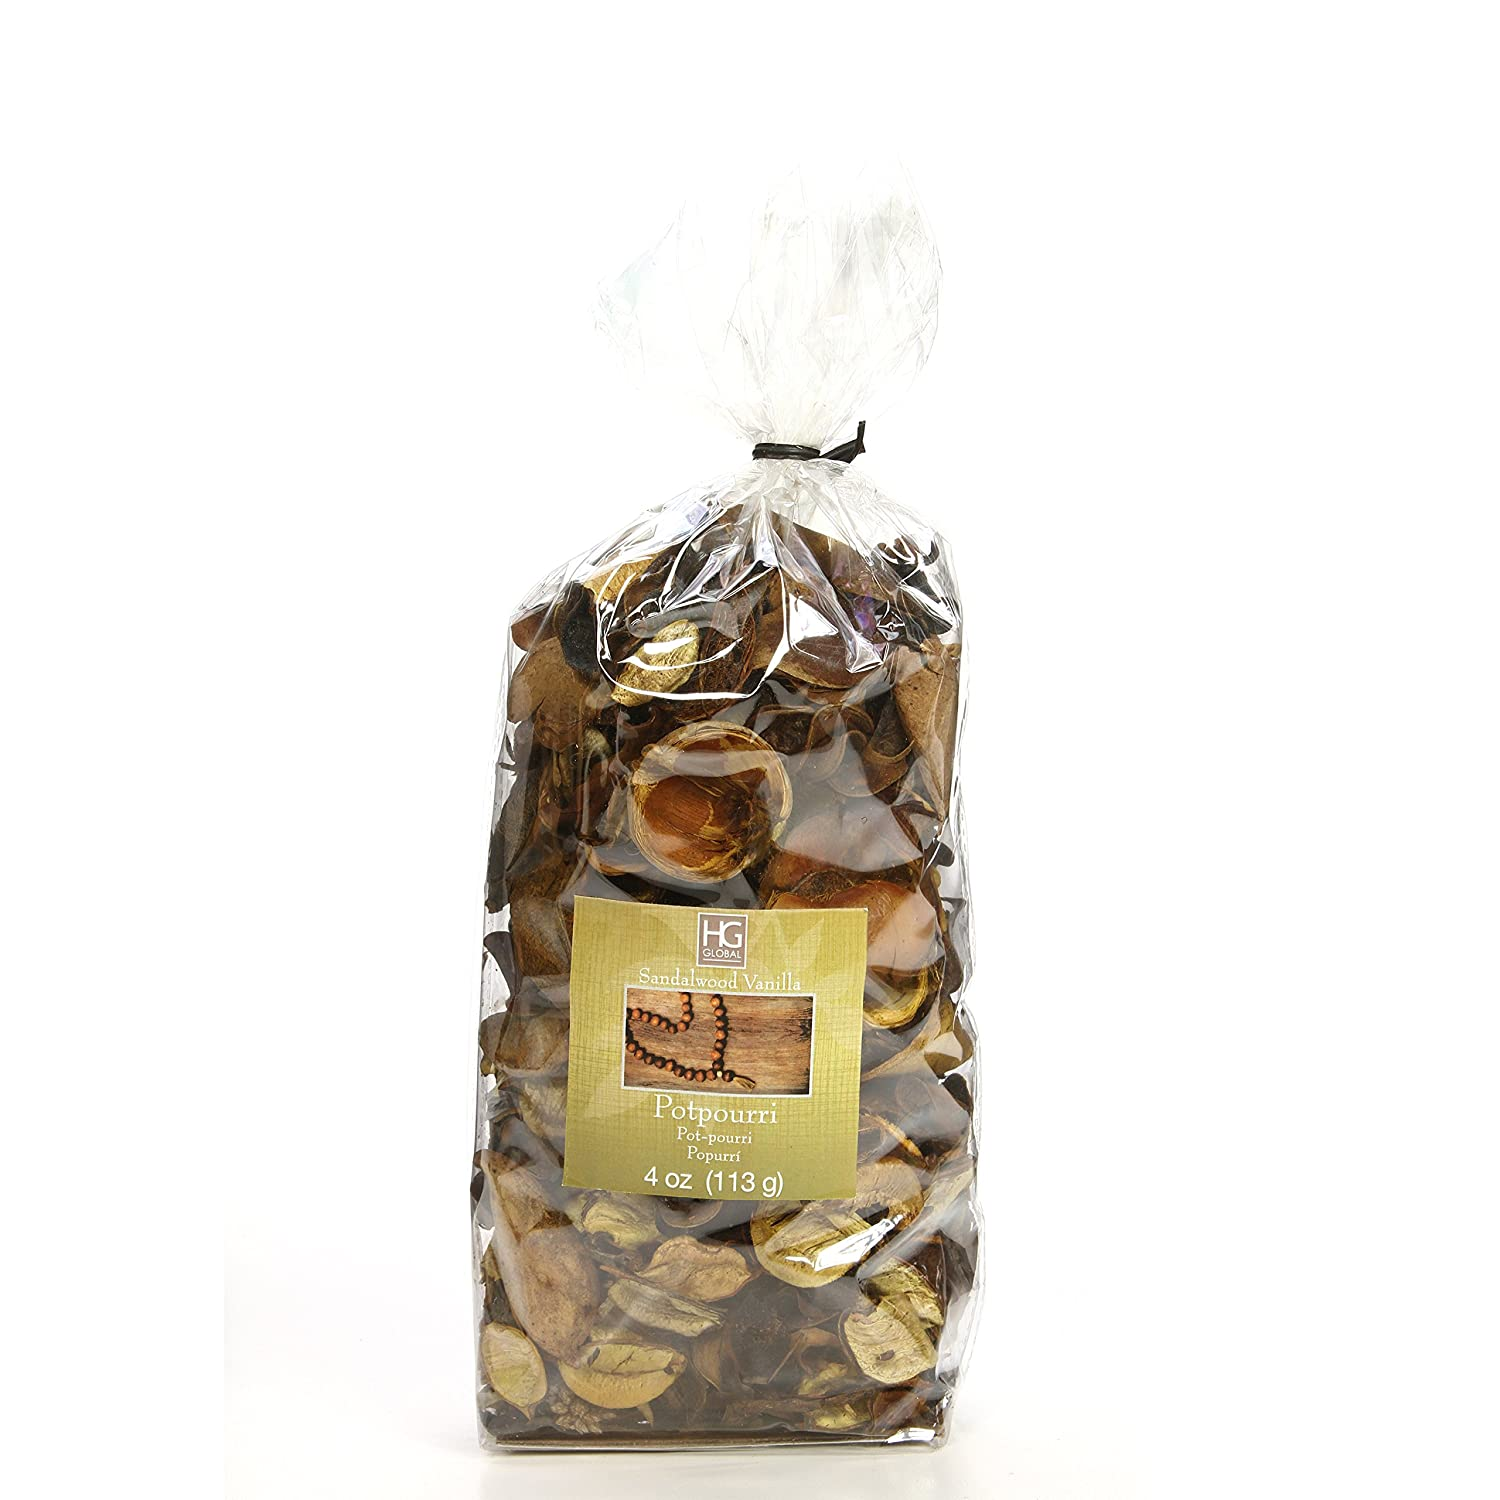 Hosley's Sandalwood Vanilla Scented, Natural Potpourri Bag, 4 oz. Infused with Essential Oils. Ideal Gift for Weddings, Spa, Reiki, Meditation Settings O3 FBA_H44382WD